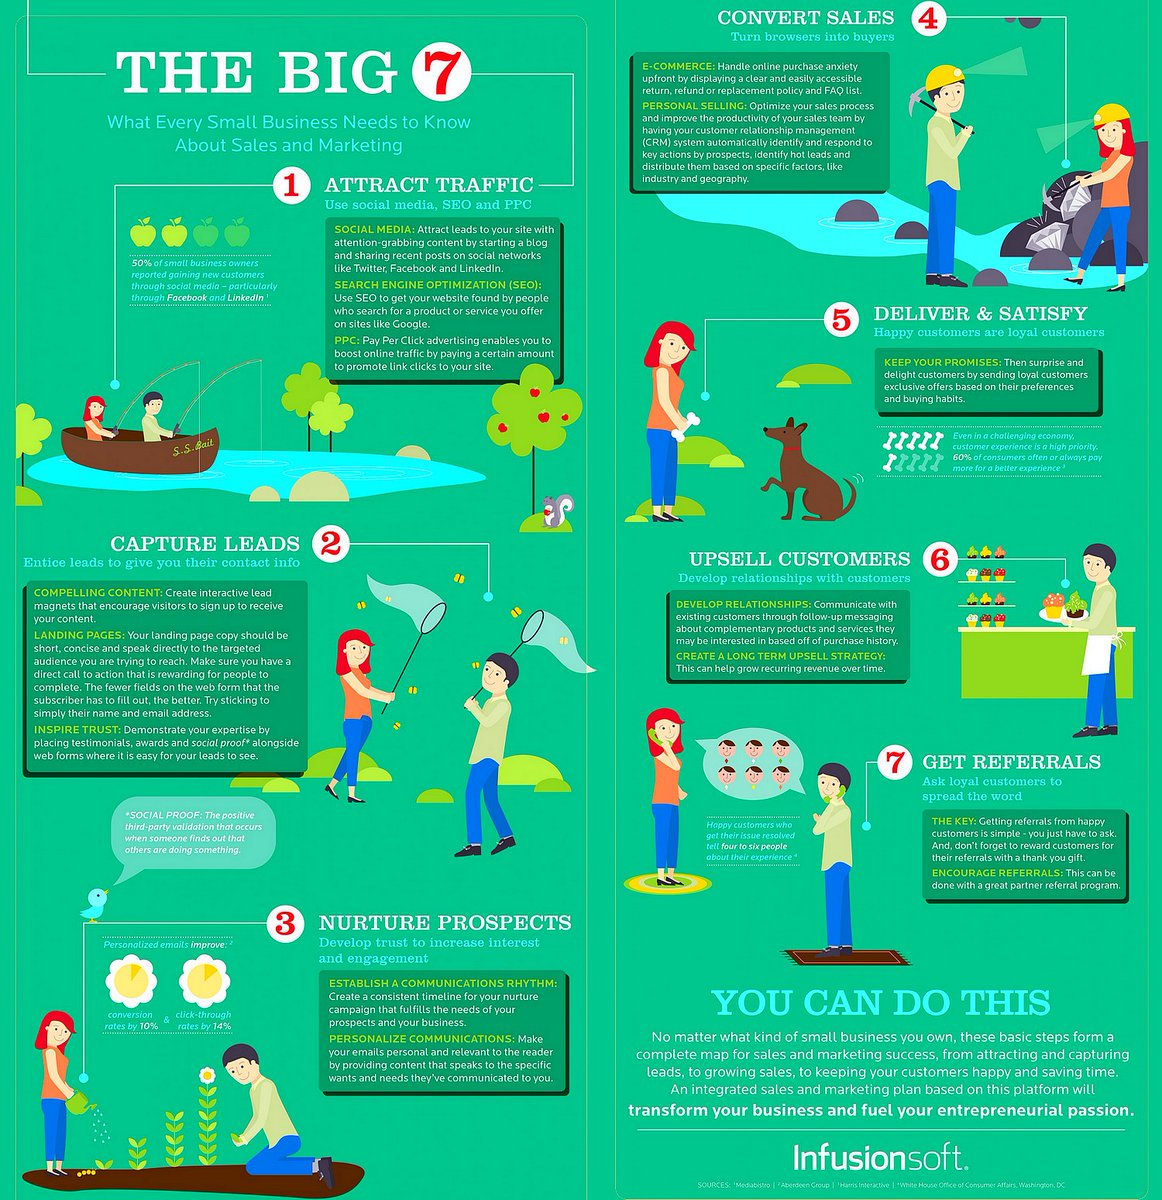 The &quot;Big 7&quot; Steps: What Every #Startup Needs to Know About #Sales &amp; #Marketing [Infographic] v/ @Infusionsoft  #DigitalMarketing #LeadGeneration #CX<br>http://pic.twitter.com/u7Ky6xRaY8